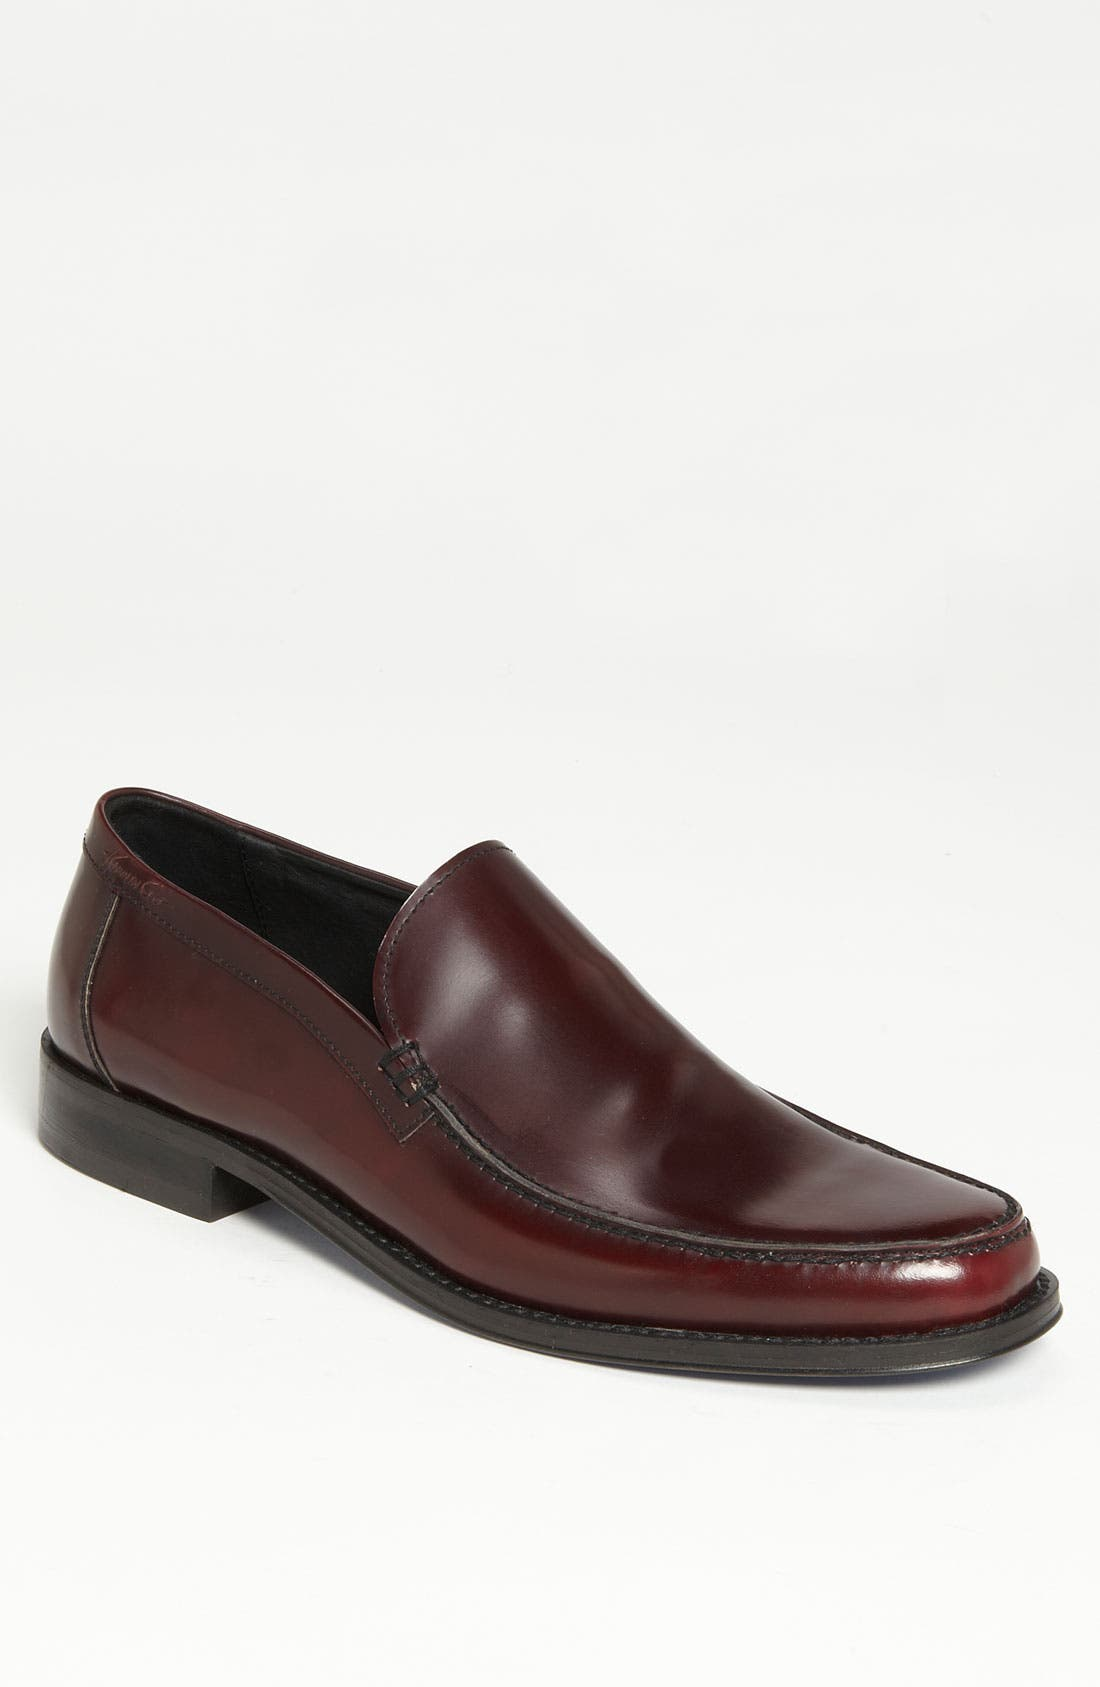 Alternate Image 1 Selected - Kenneth Cole New York 'New Leaf' Moc Toe Loafer